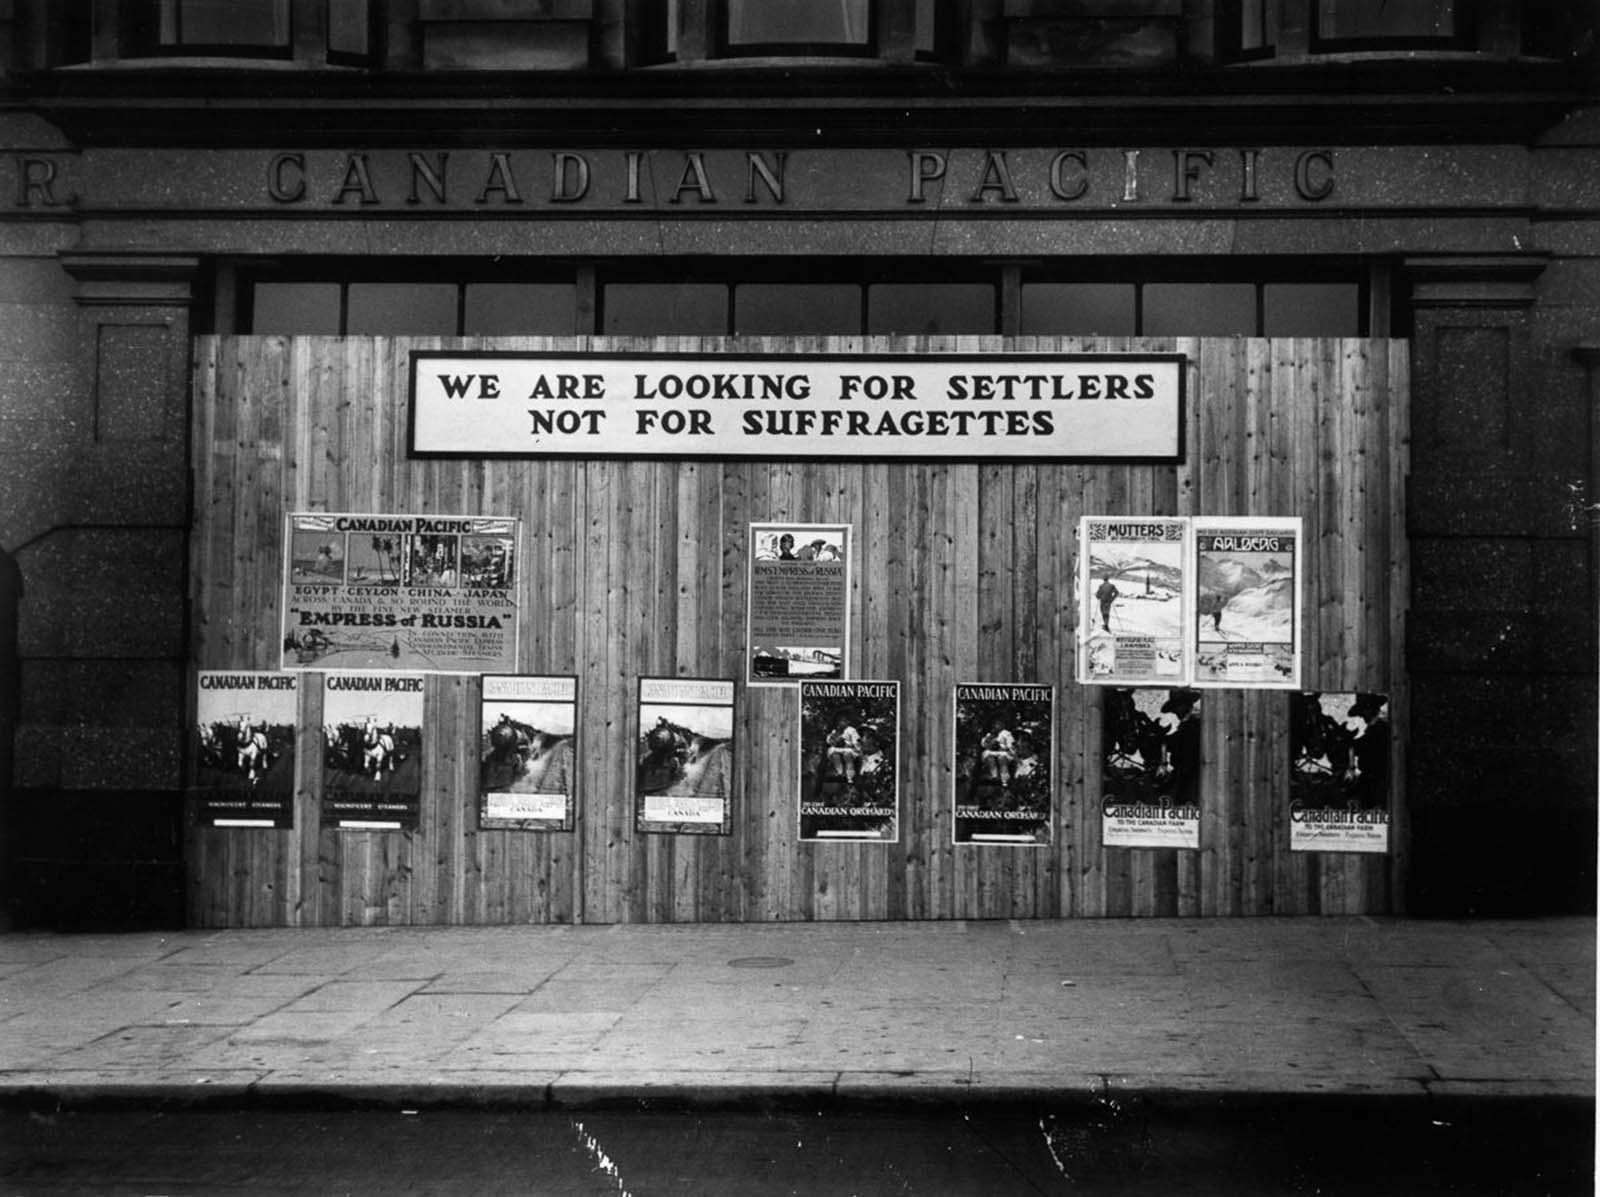 An anti-suffrage sign posted by the Canadian Pacific Railway Company in London. 1913.